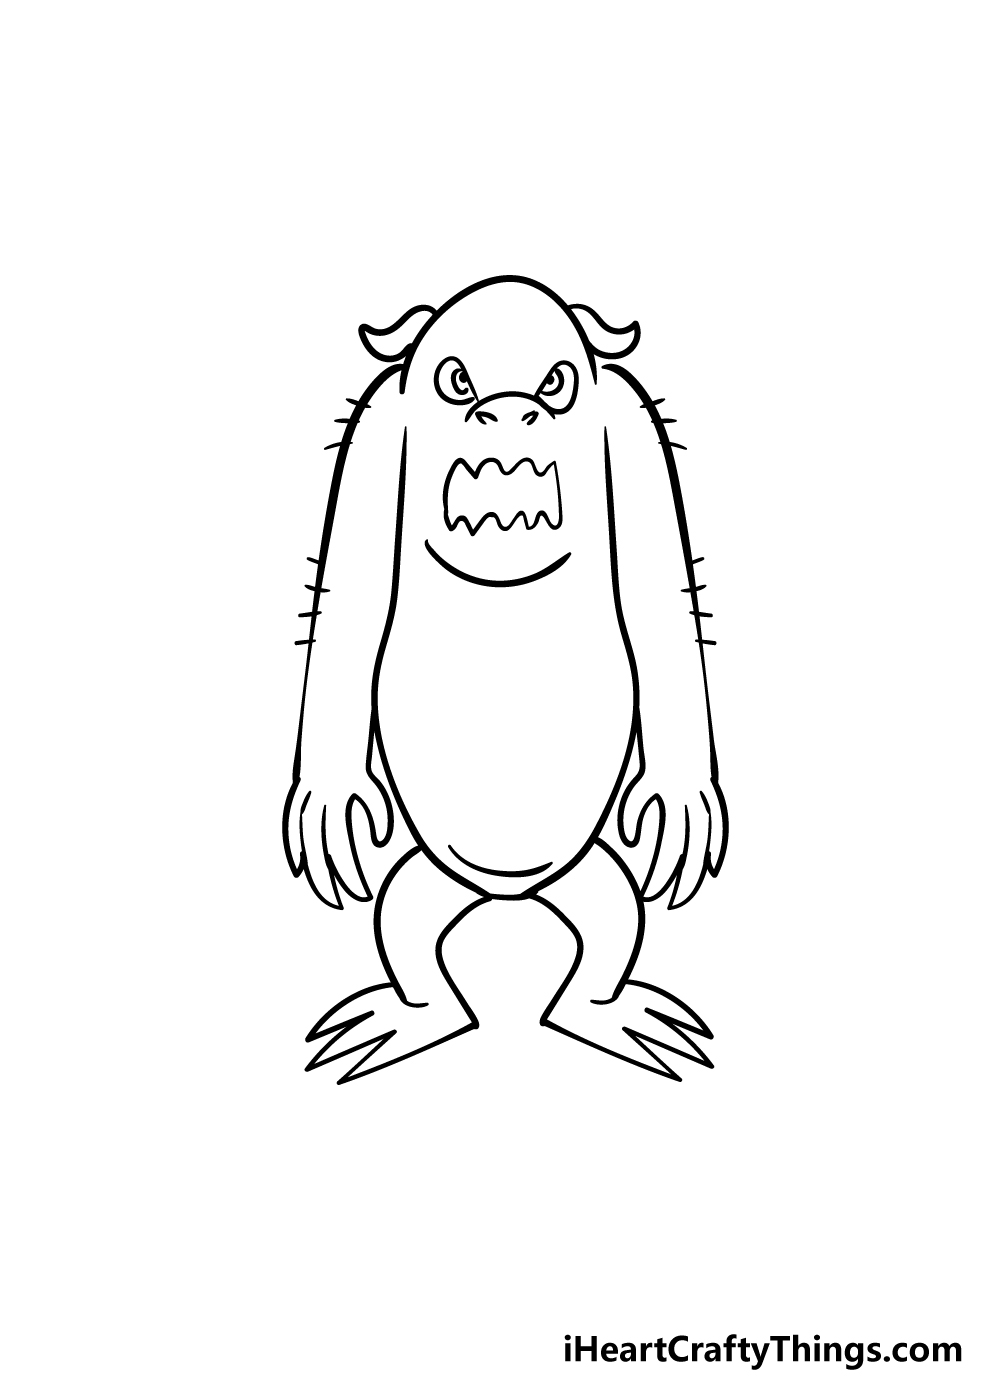 monster drawing step 6